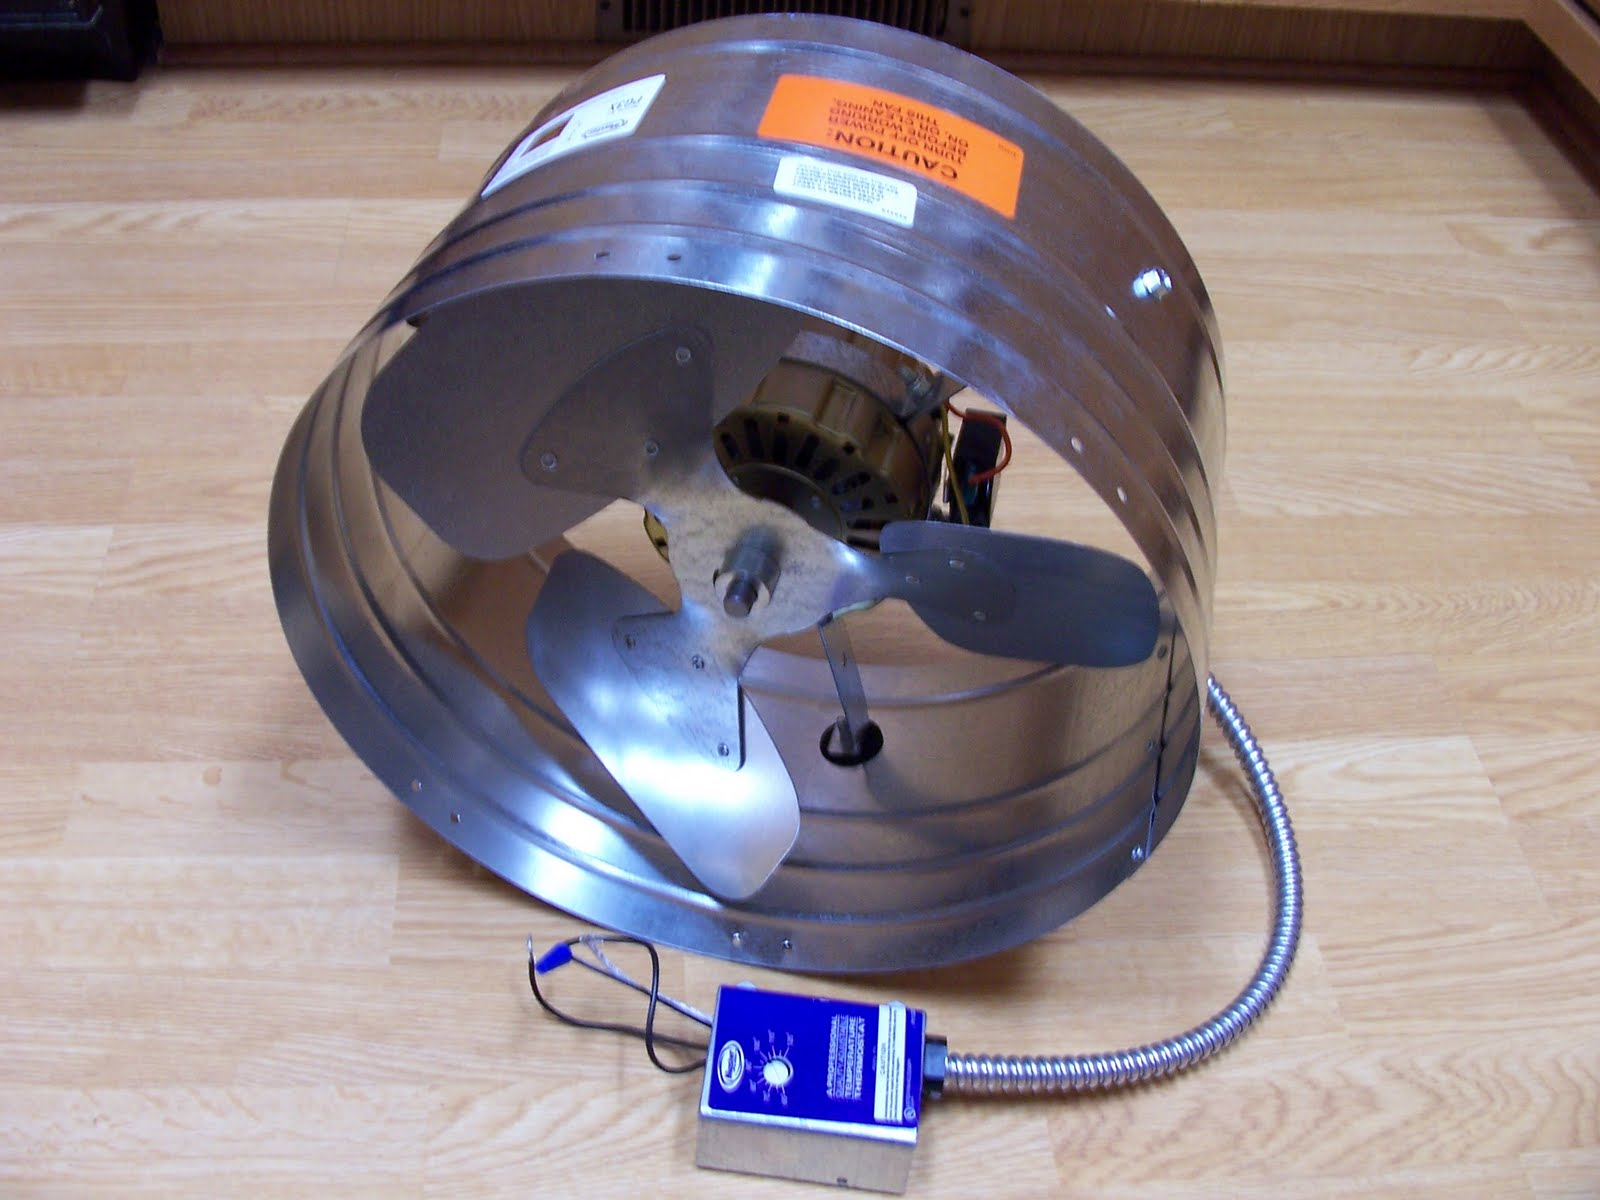 Another Item I Bought Today Was The Main Circulation Fan Purchased A Master Flow Best Pro 3 Attic Ventilator For 93 00 From Home Depot